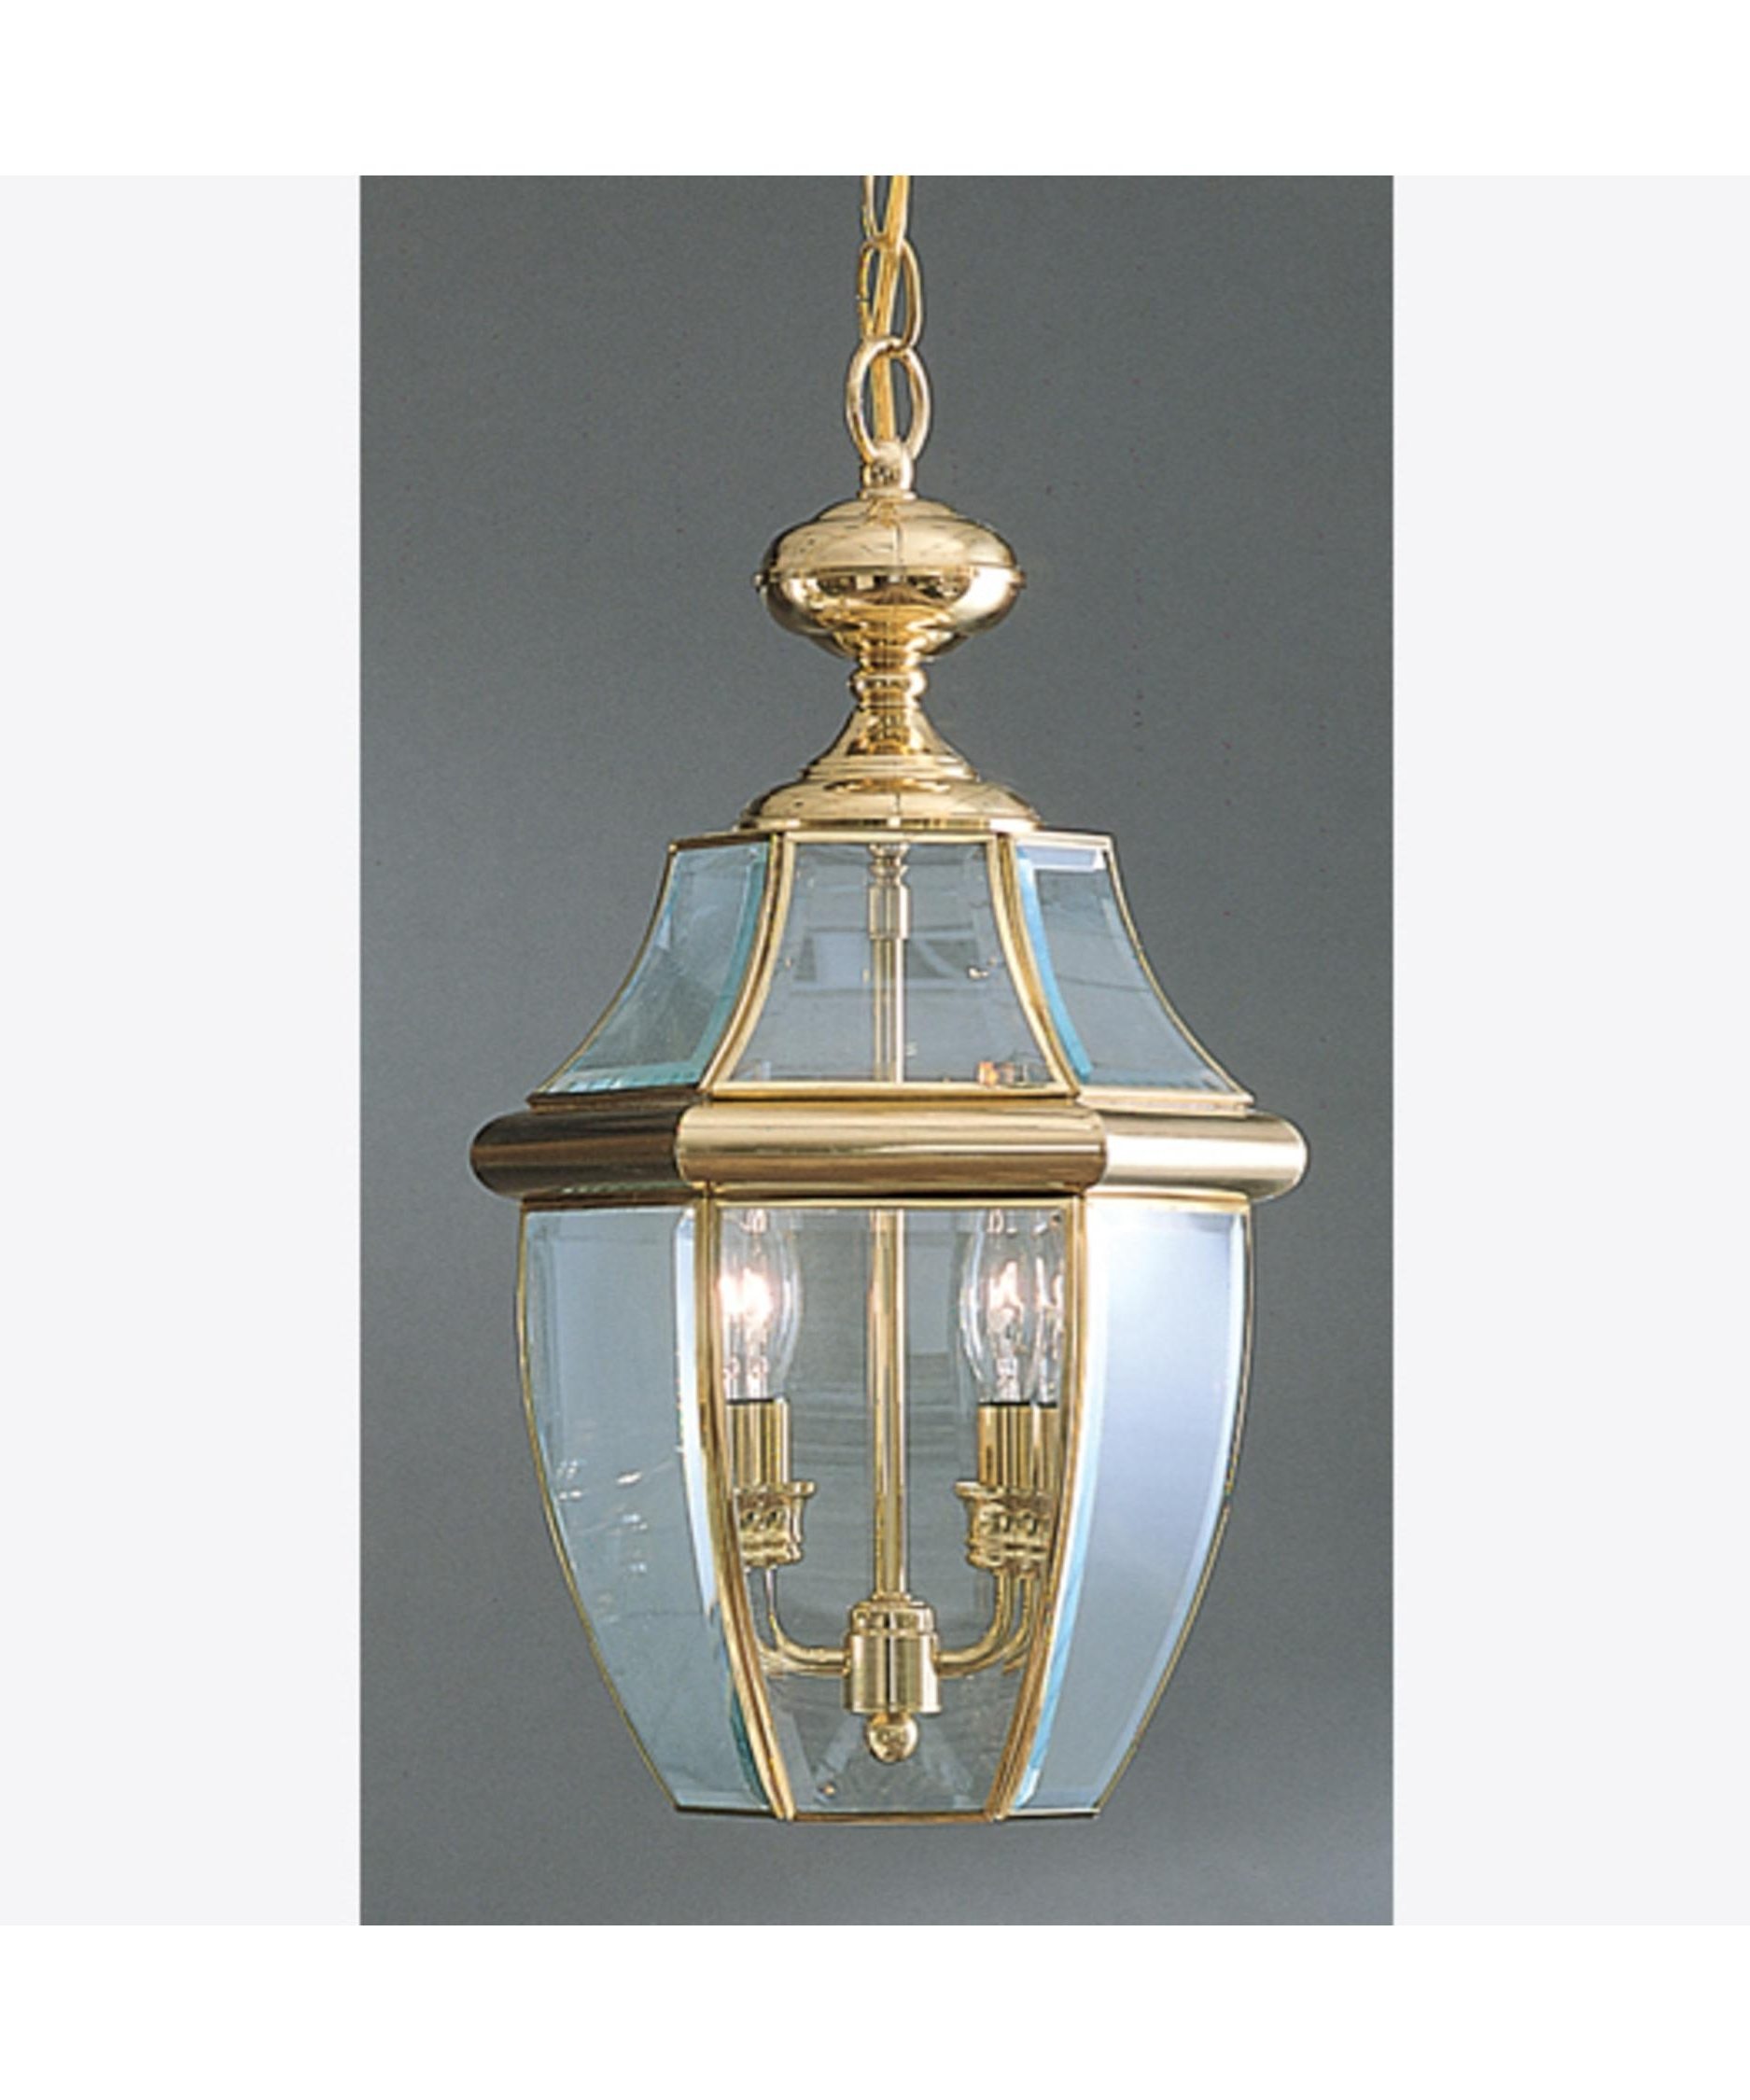 Outdoor Hanging Porch Lights Throughout 2019 Quoizel Ny1178 Newbury 10 Inch Wide 2 Light Outdoor Hanging Lantern (View 13 of 20)